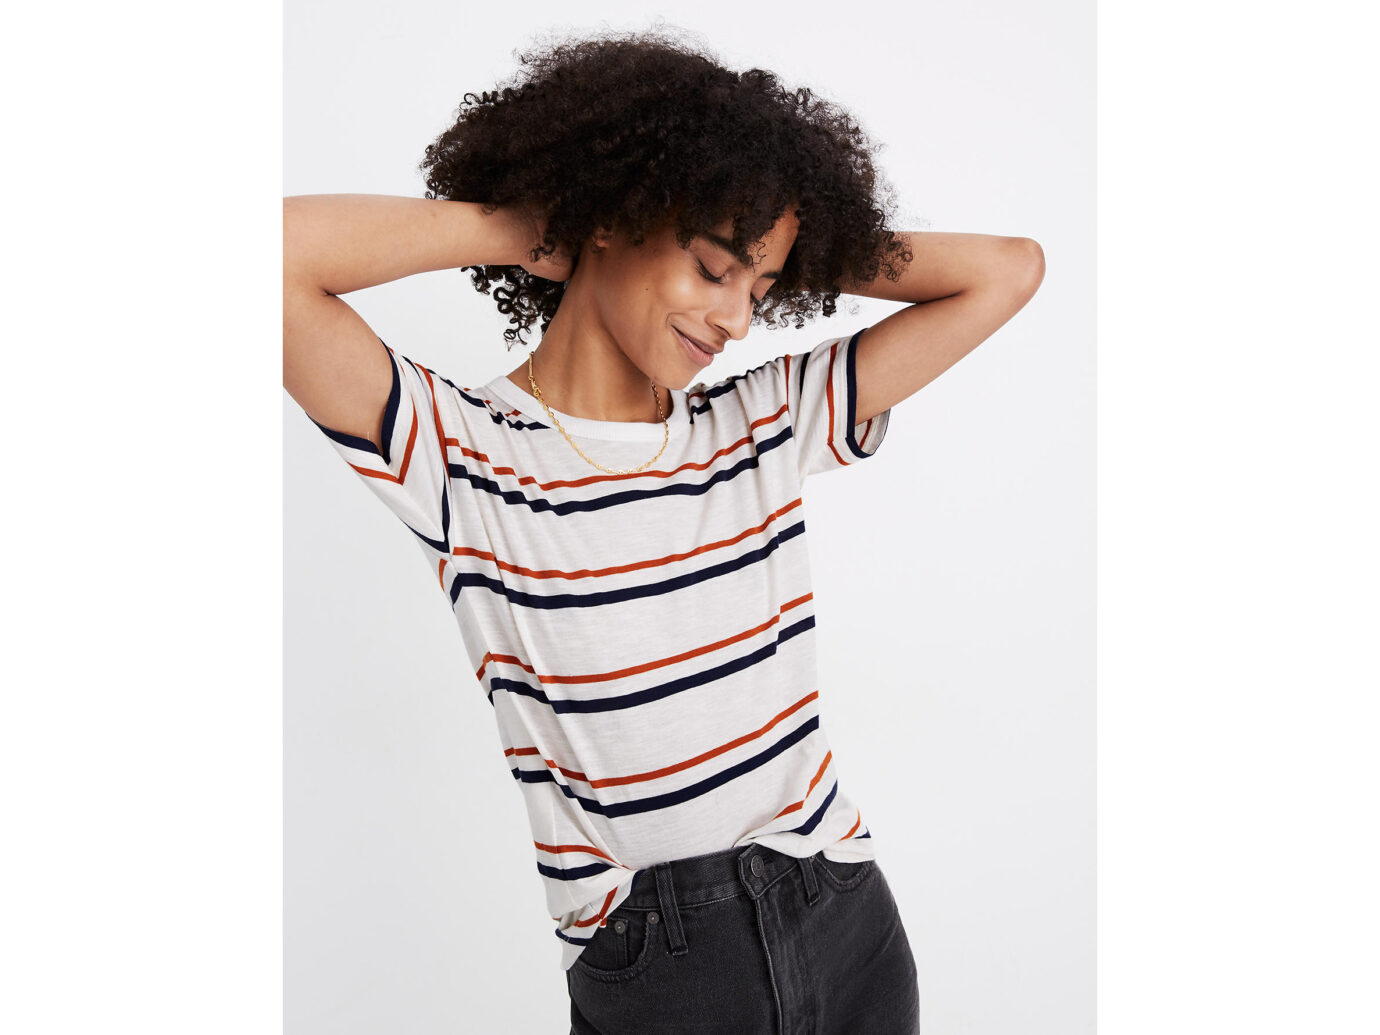 Madewell Whisper Cotton Rib-Crewneck Tee in Smithly Stripe